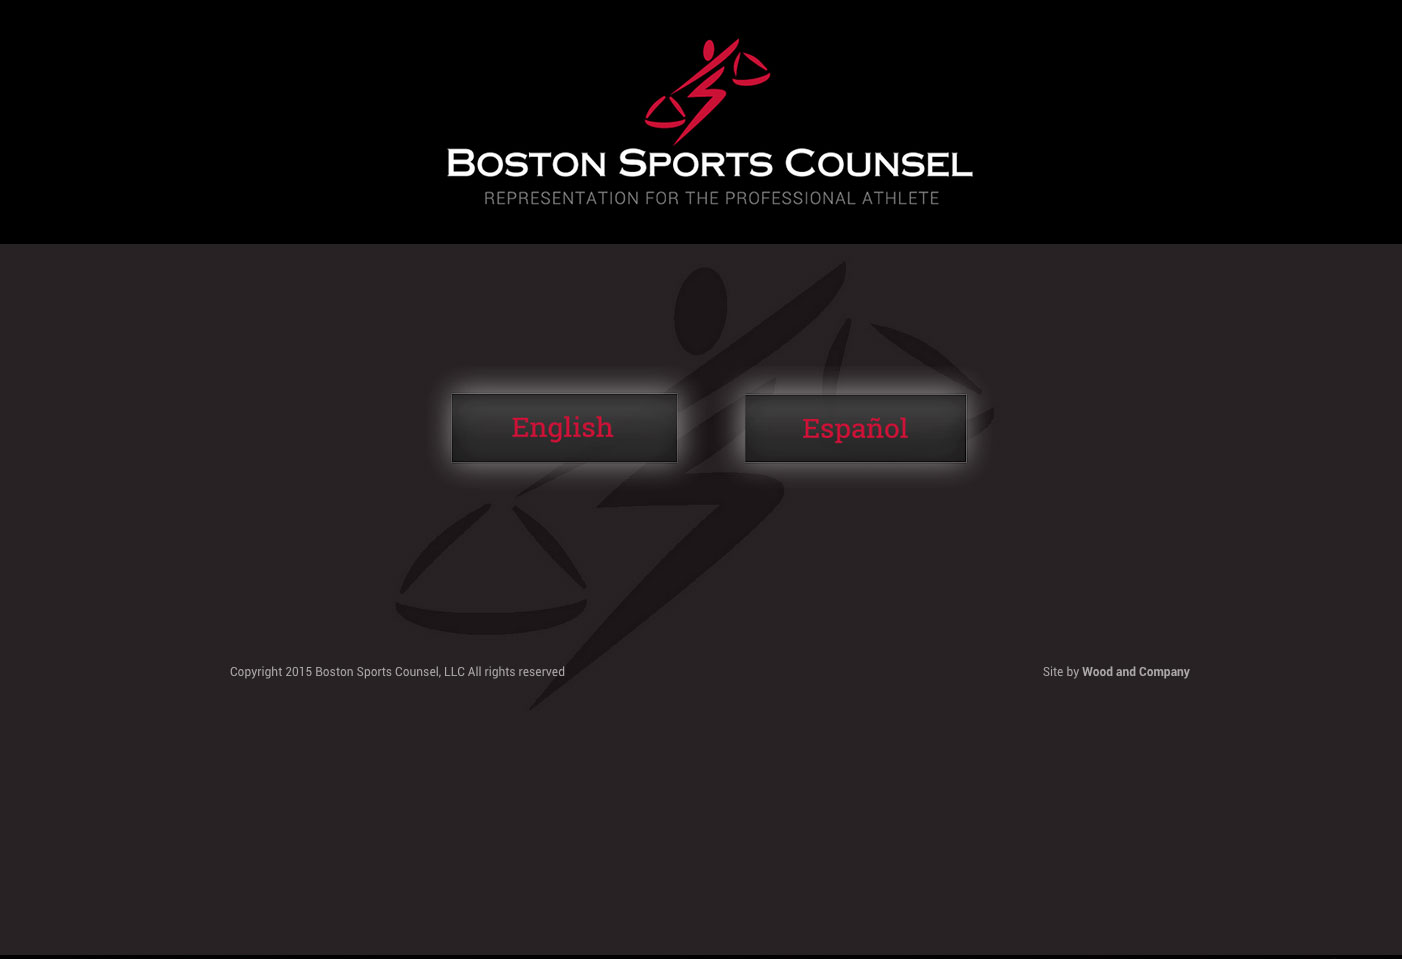 Boston Sports Counsel bilingual landing page